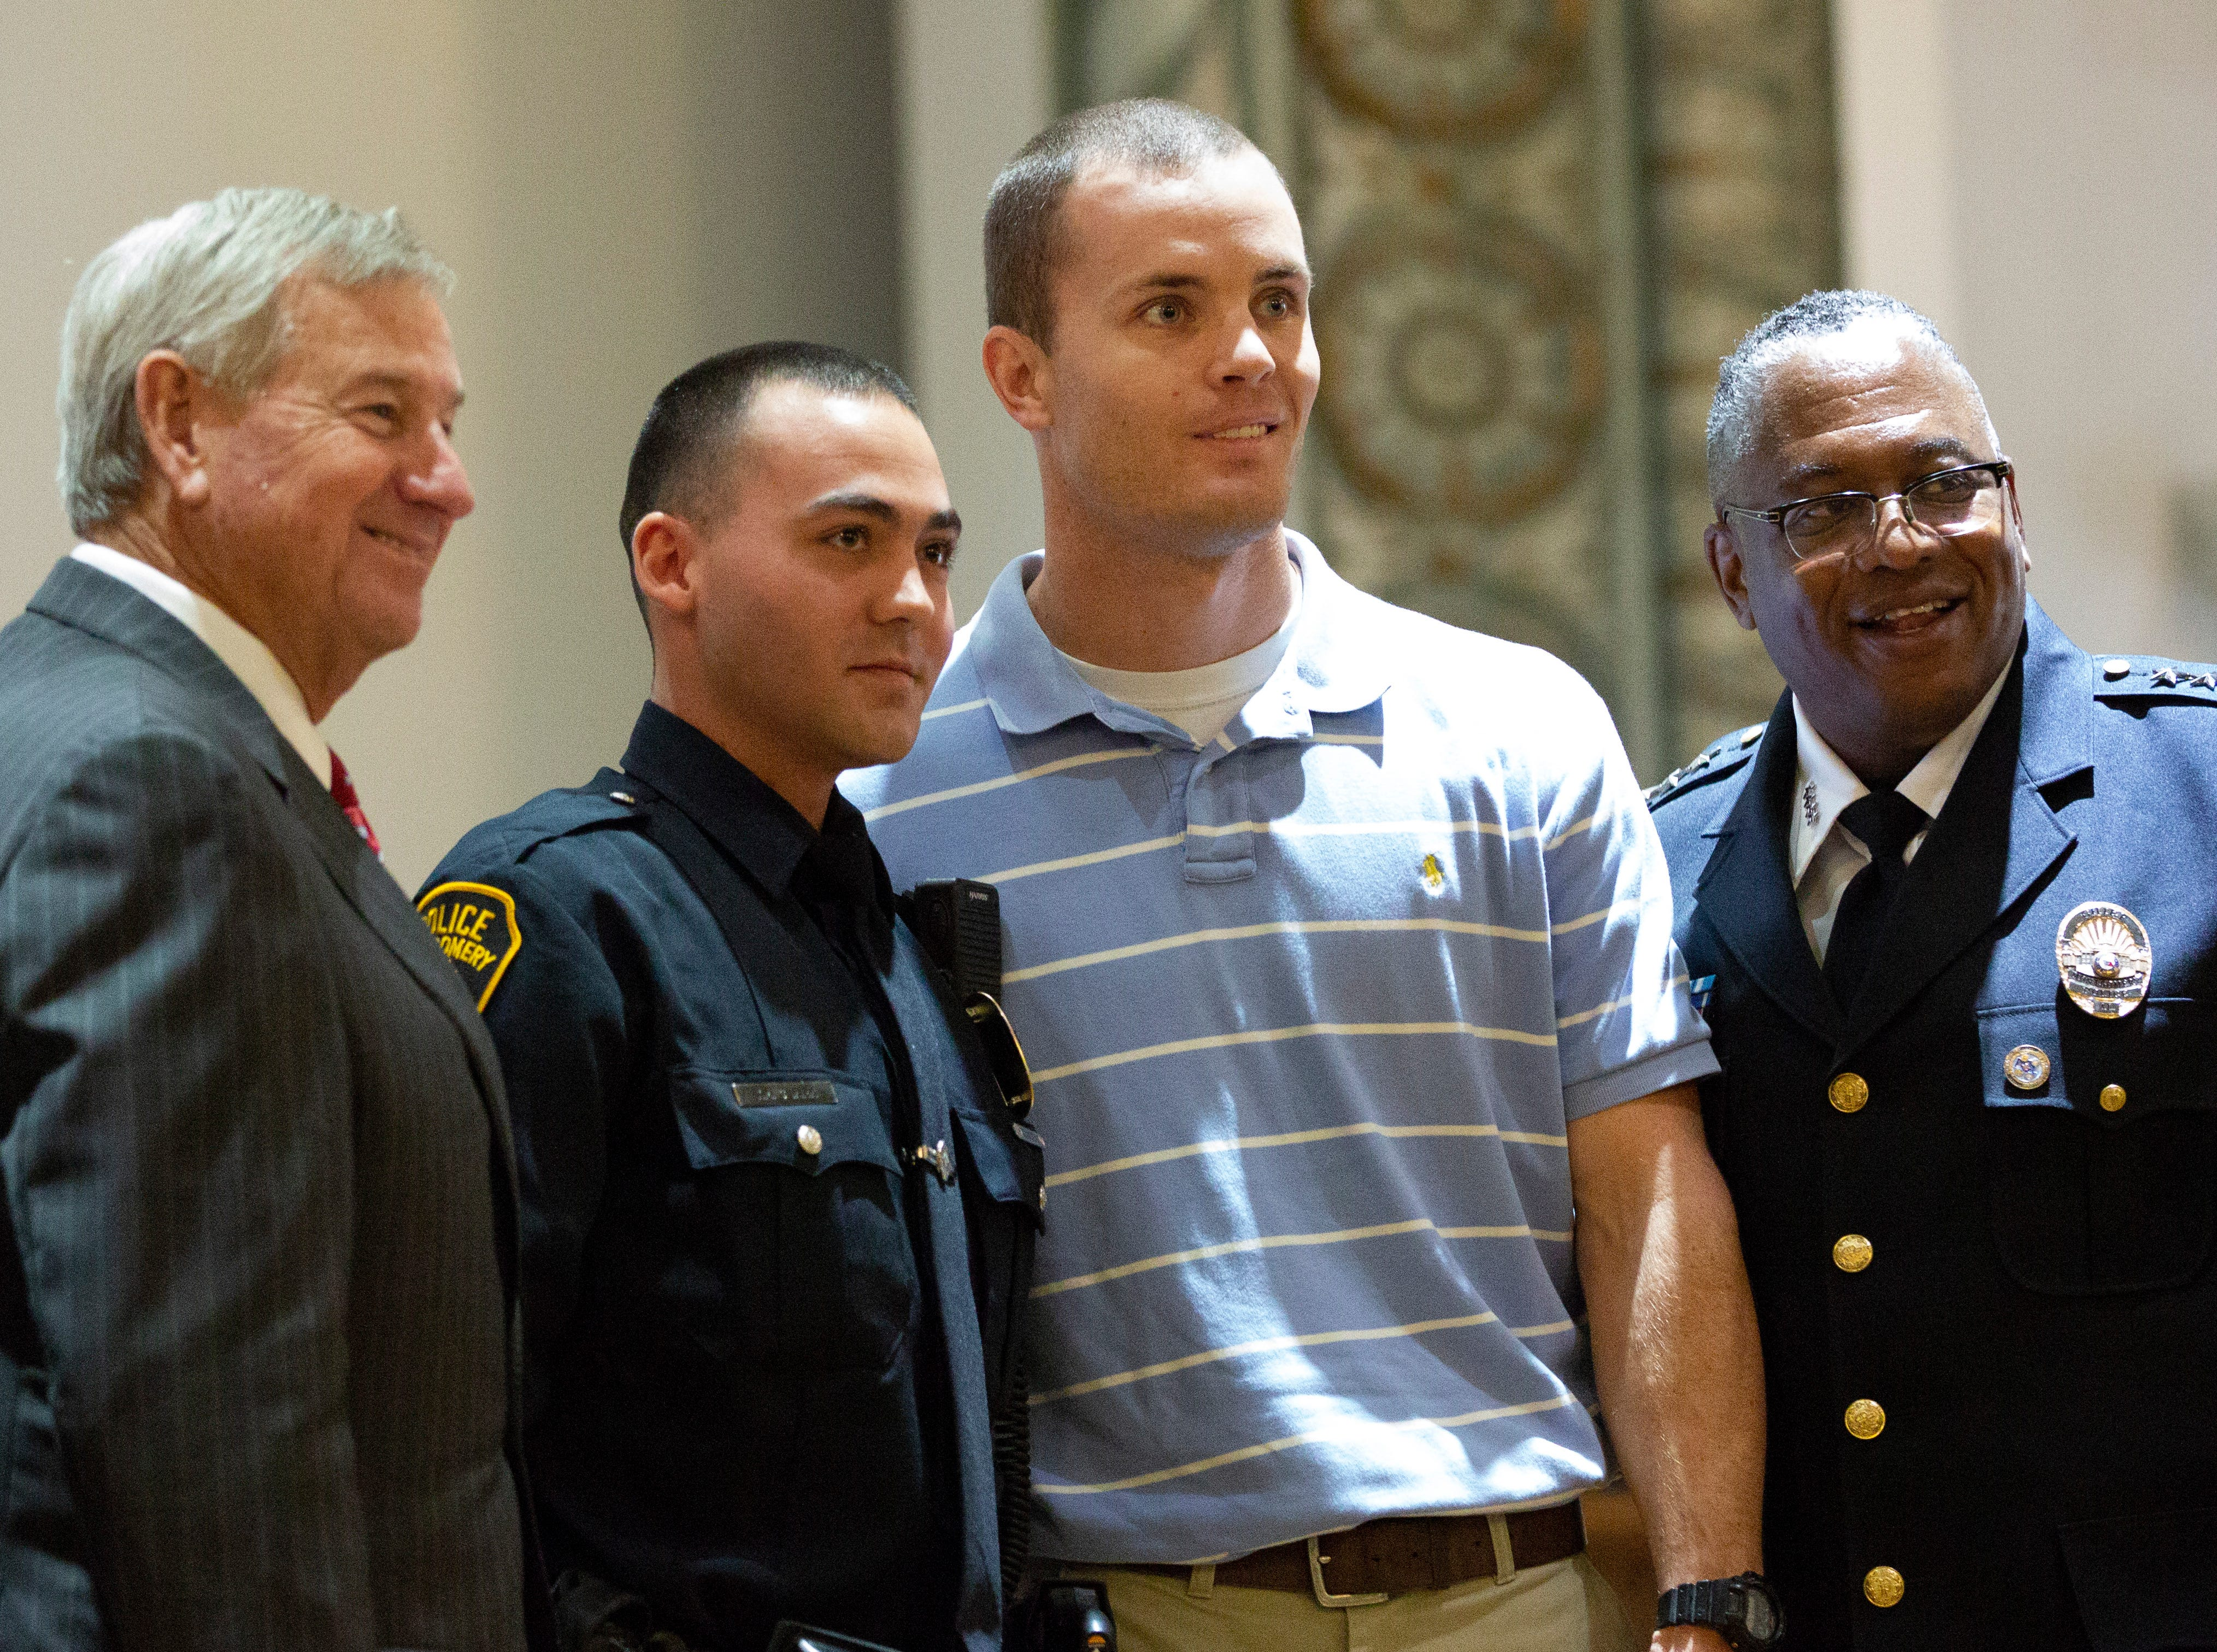 Montgomery police officer Taylor Clark poses for a photo after graduating from the academy.